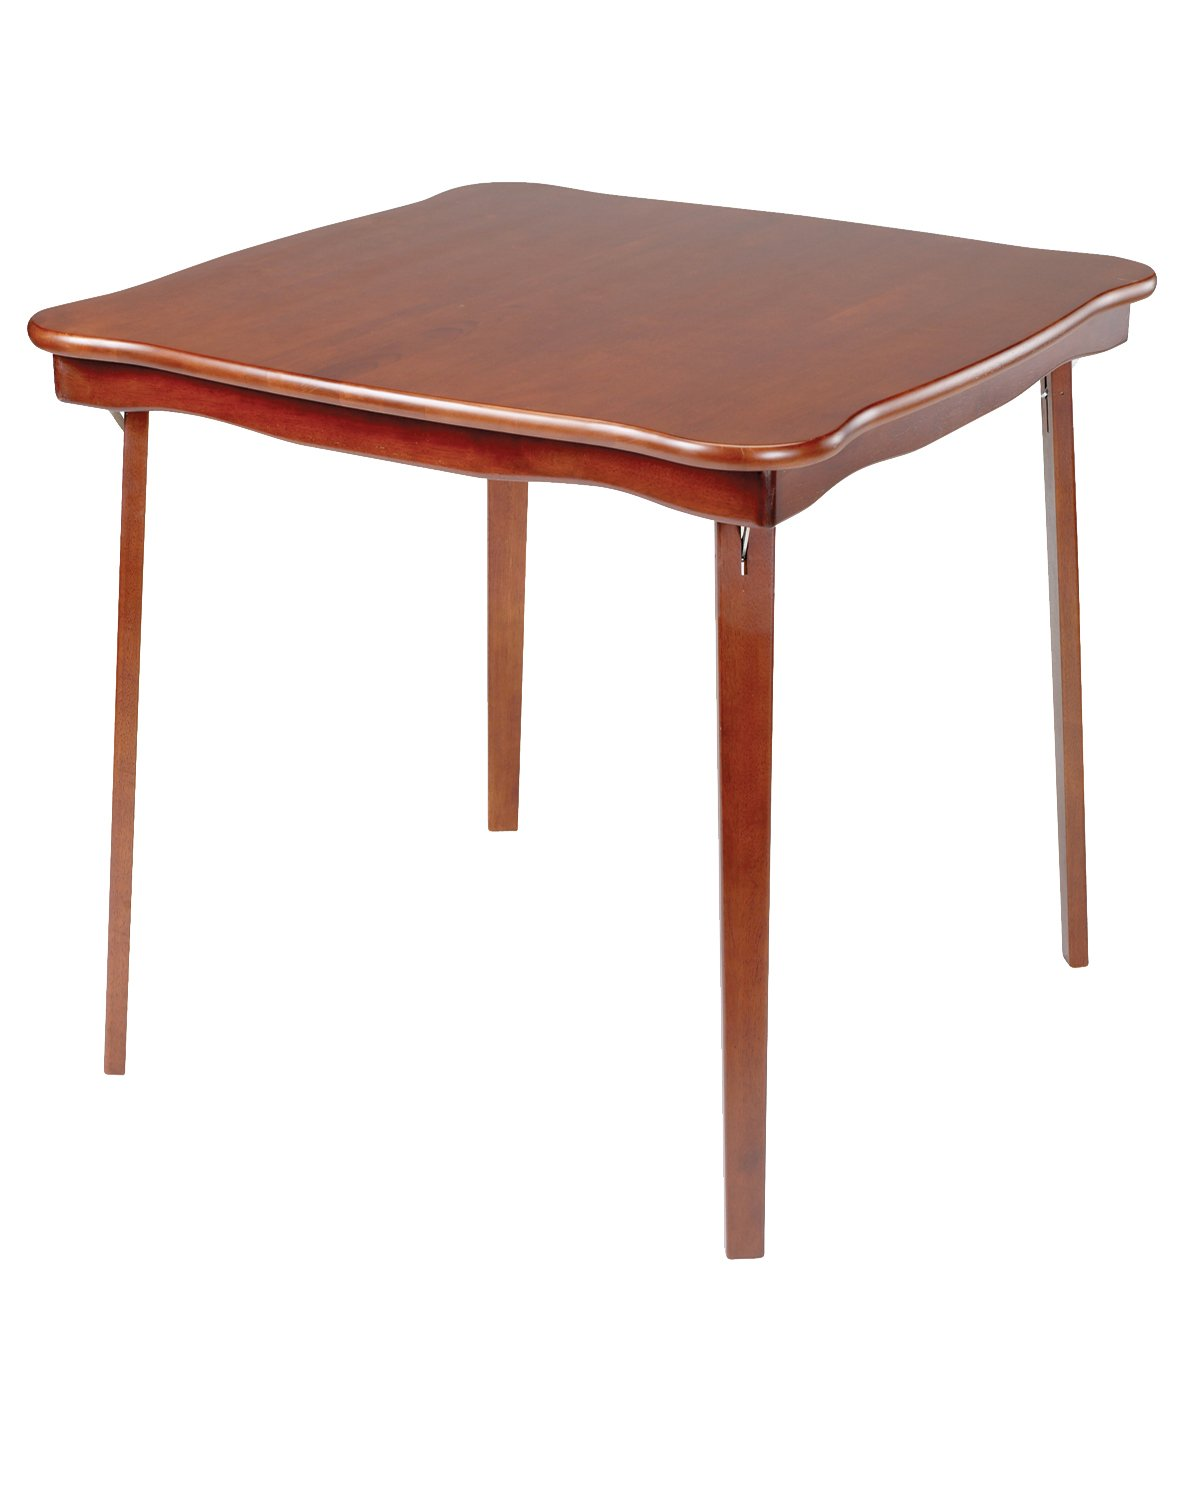 Stakmore Scalloped Edge Folding Card Table Finish, Cherry by MECO